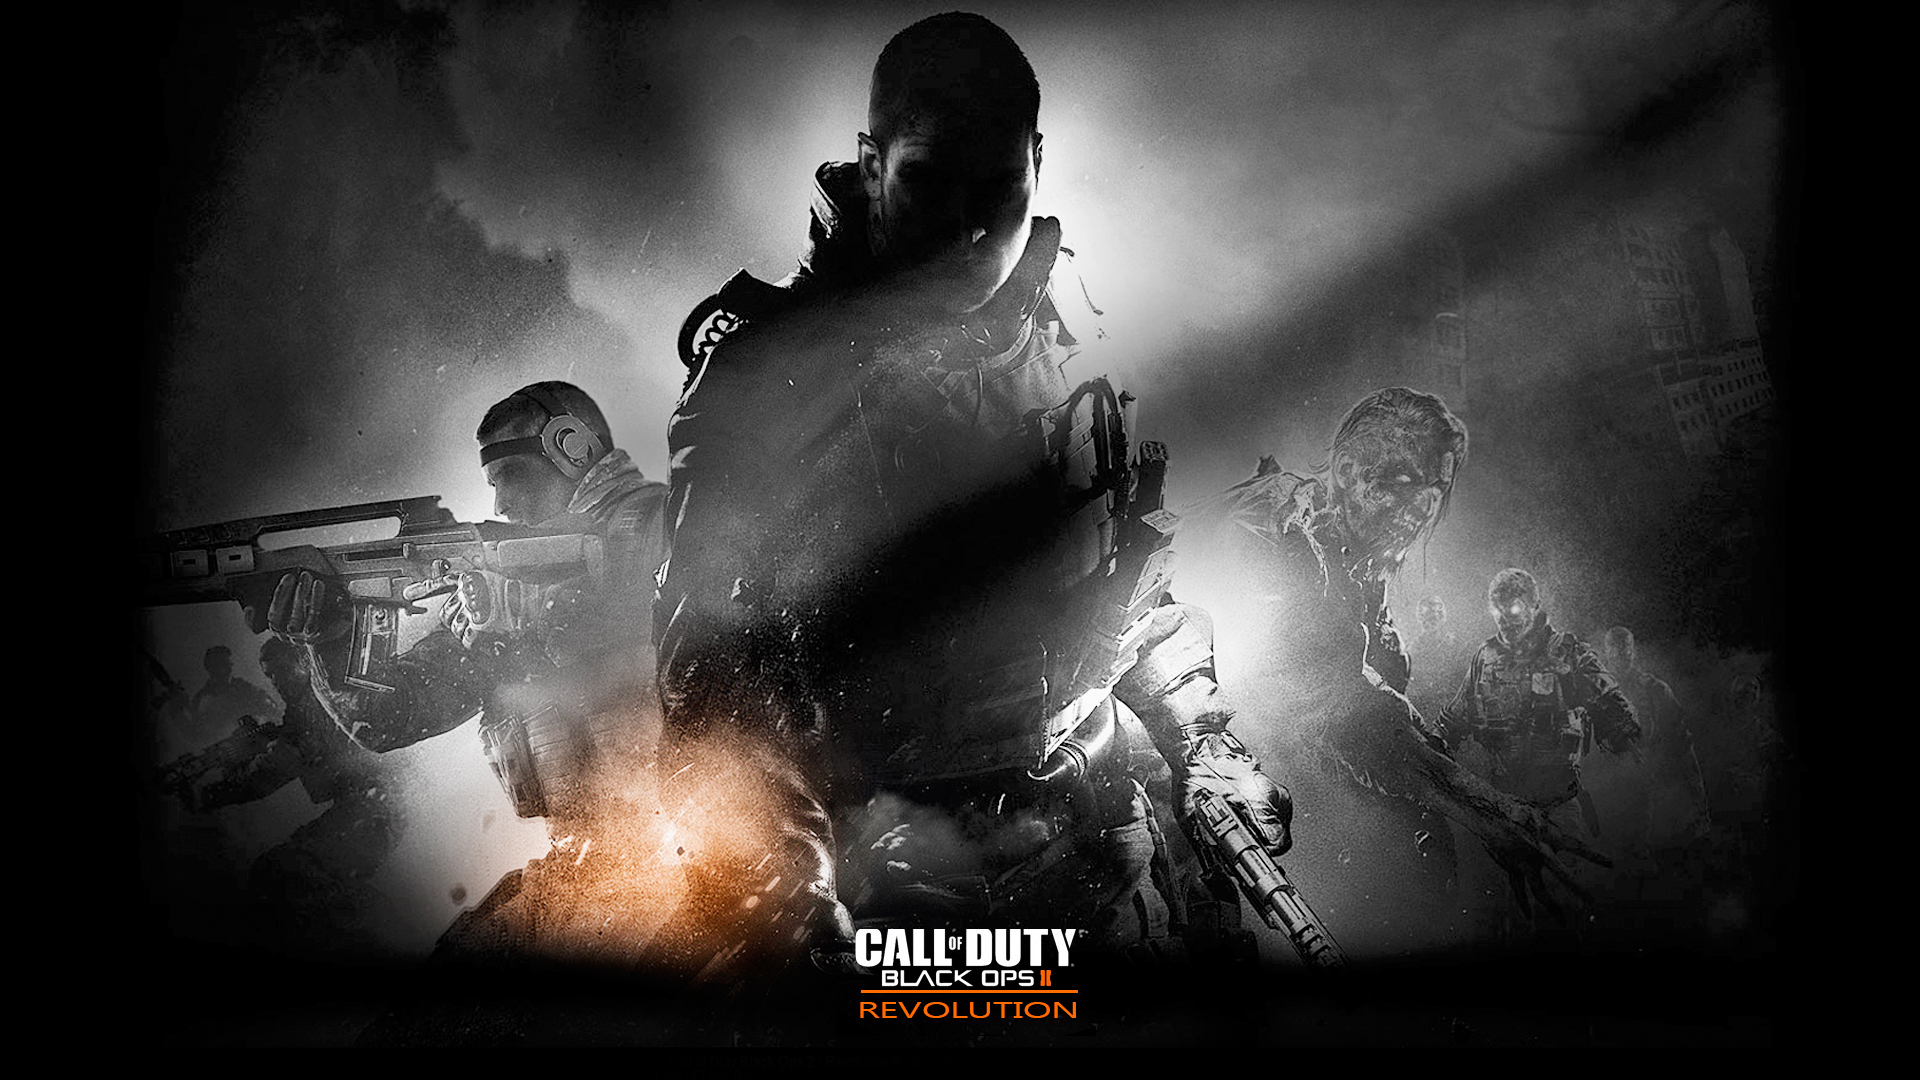 Call Of Duty Black Ops 2 Revolution